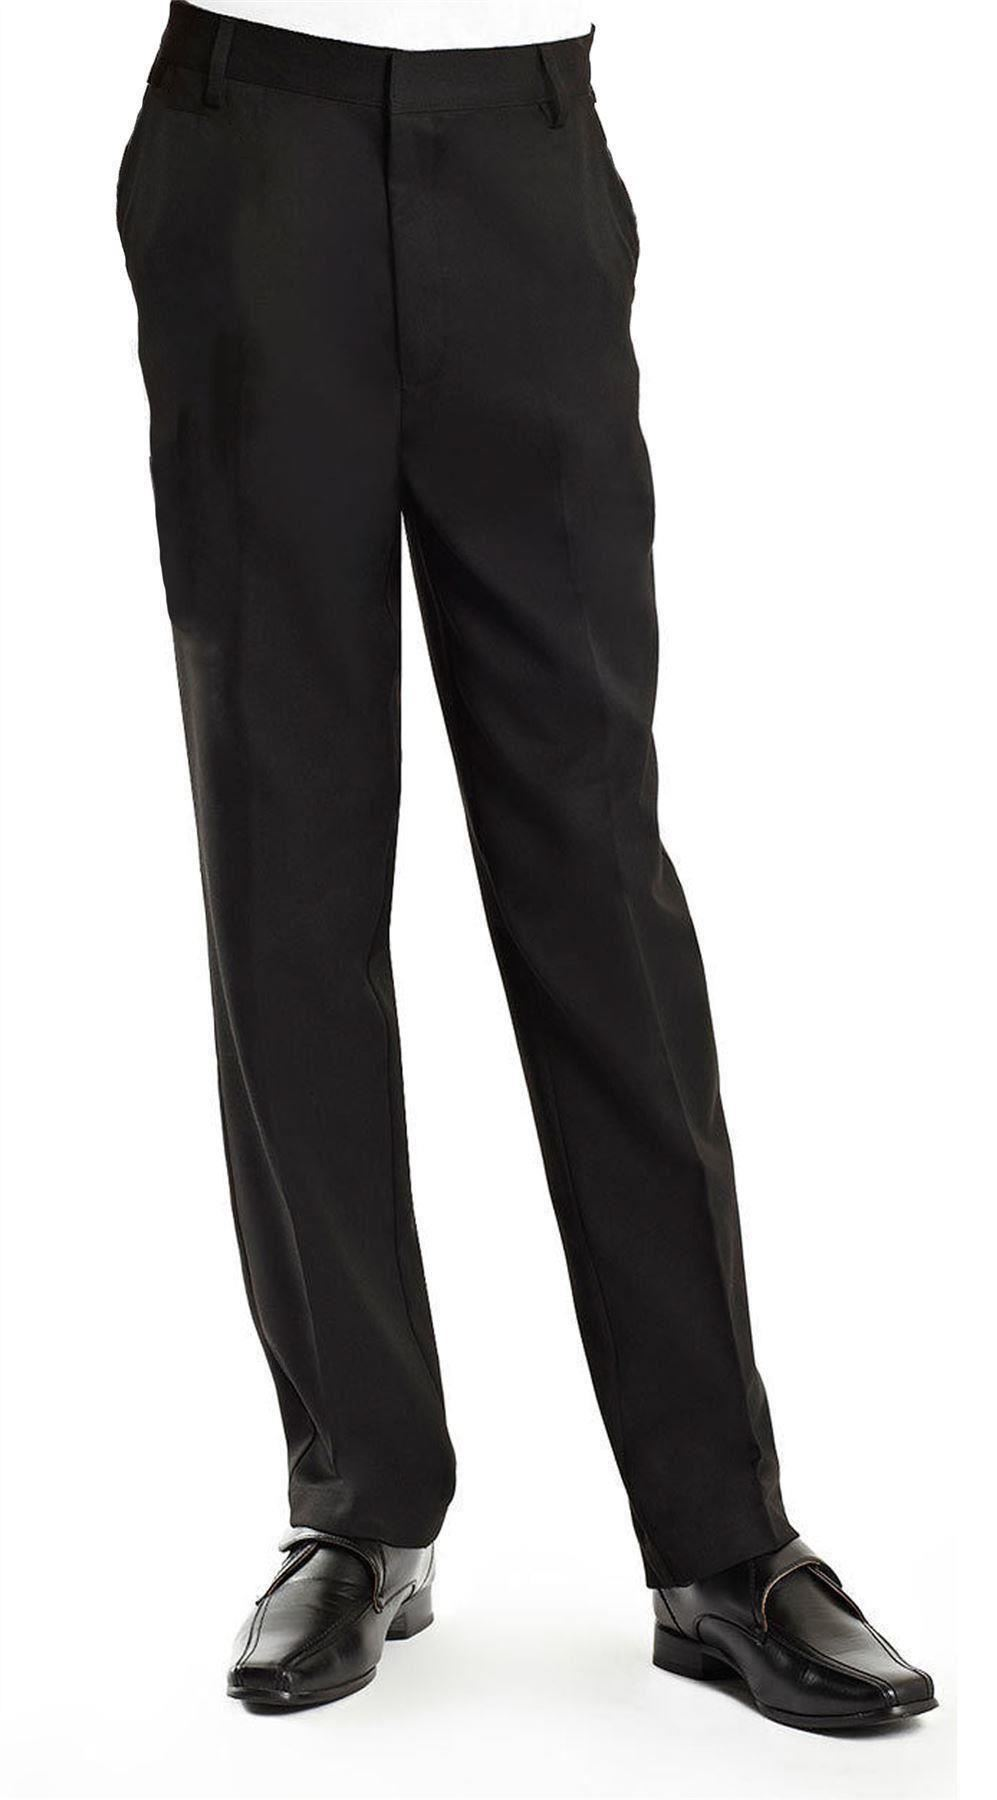 A slim, updated take on the classic evening-wear staple, these sharp tuxedo pants by Calvin Klein feature a modern, flat-front profile that will give any guy stylish appeal. Pair with Calvin Klein's Slim Fit Tuxedo Coat for a complete look.